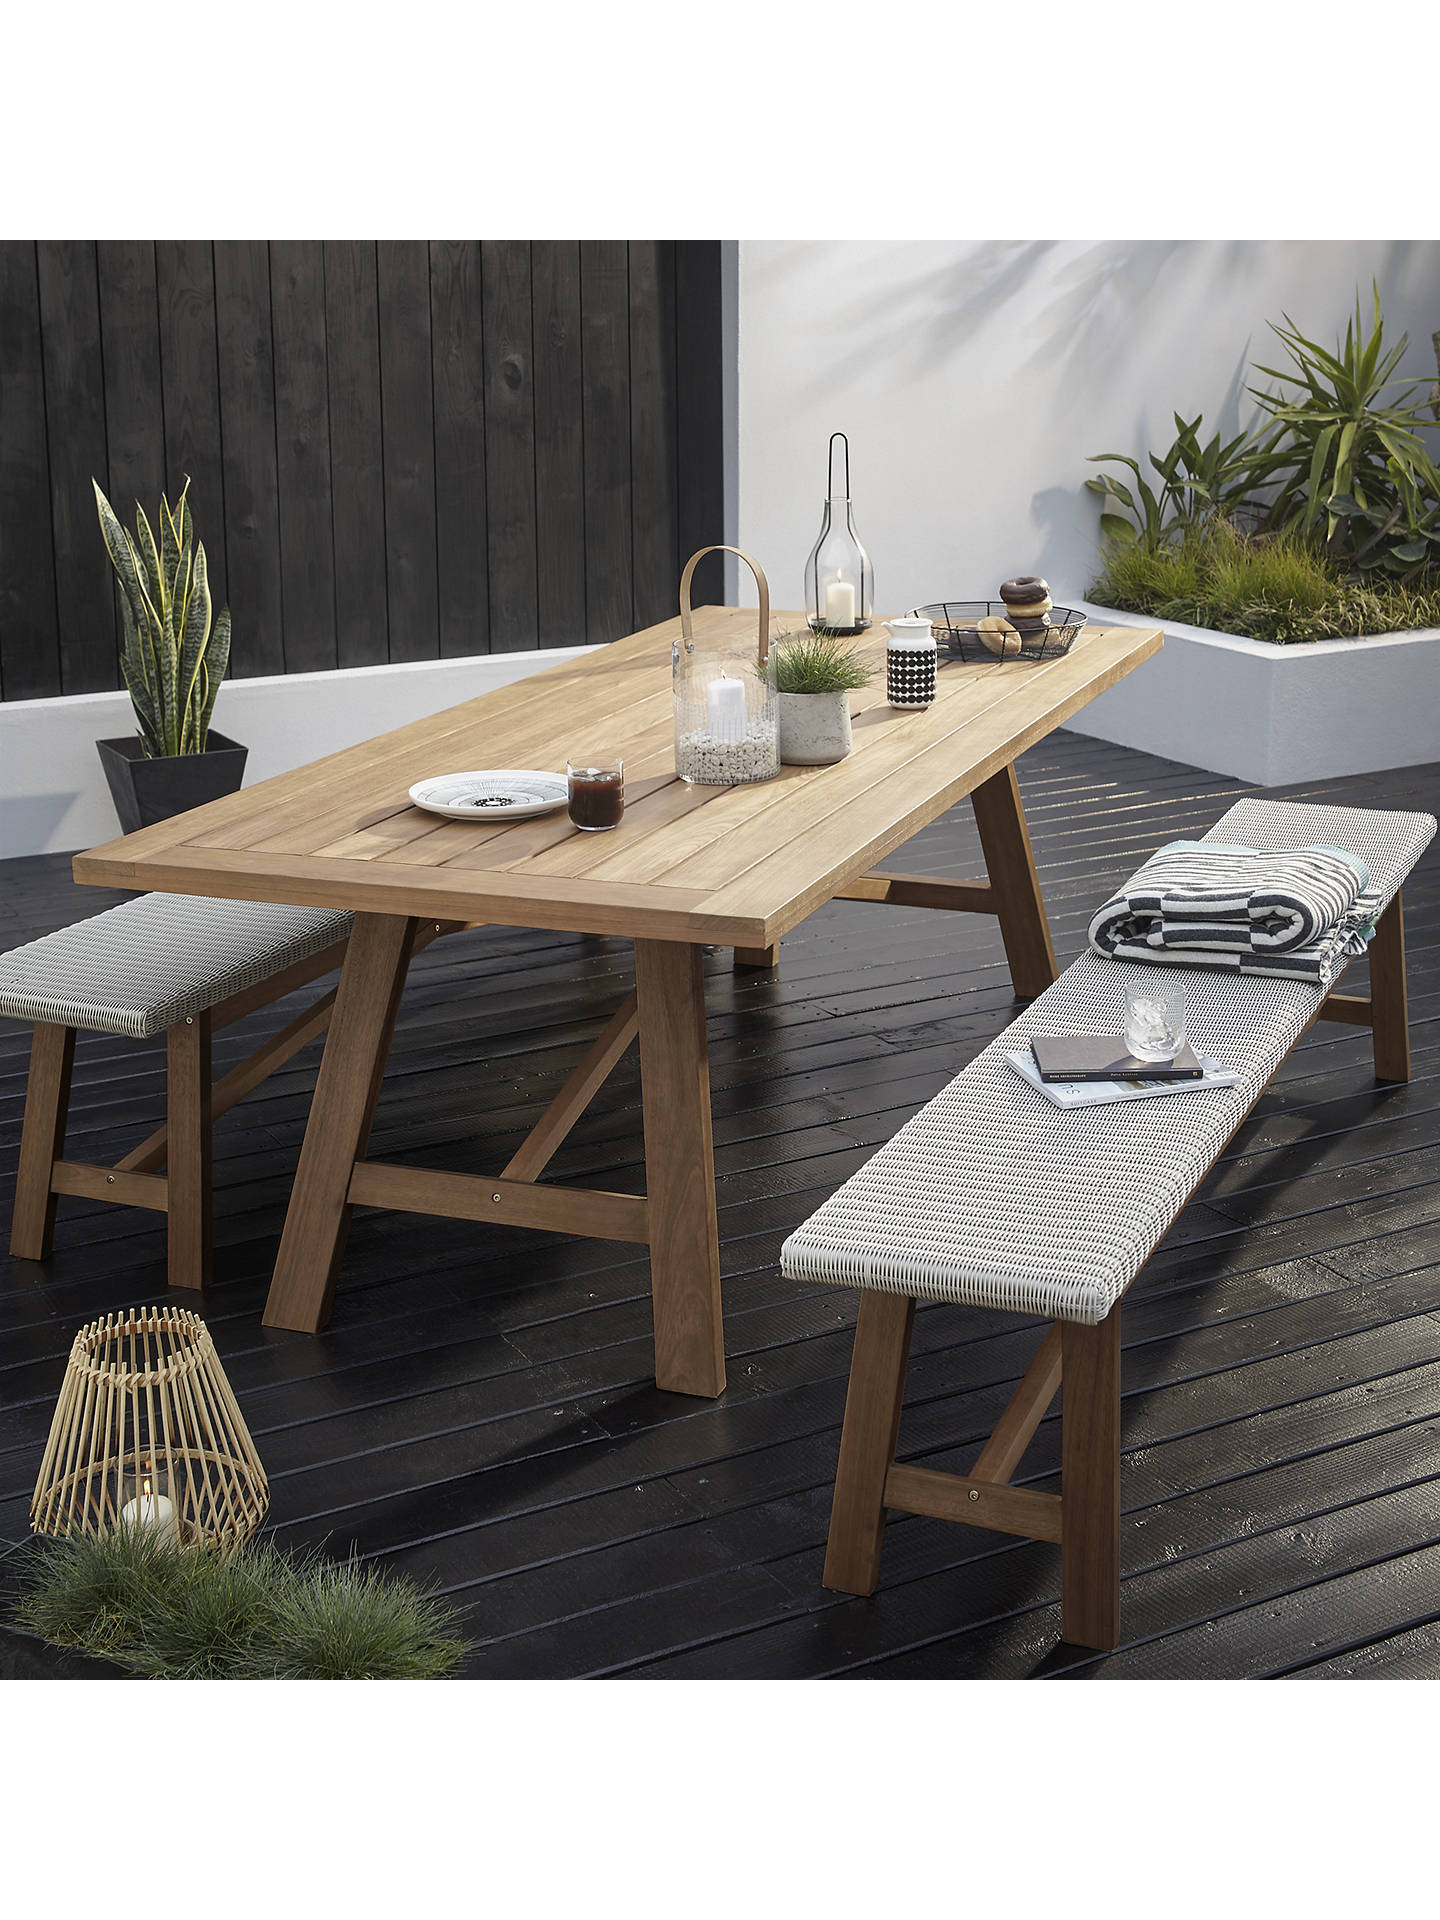 Magnificent John Lewis Partners Stockholm 8 10 Seater Garden Dining Table Bench Set Fsc Certified Eucalyptus Natural Machost Co Dining Chair Design Ideas Machostcouk